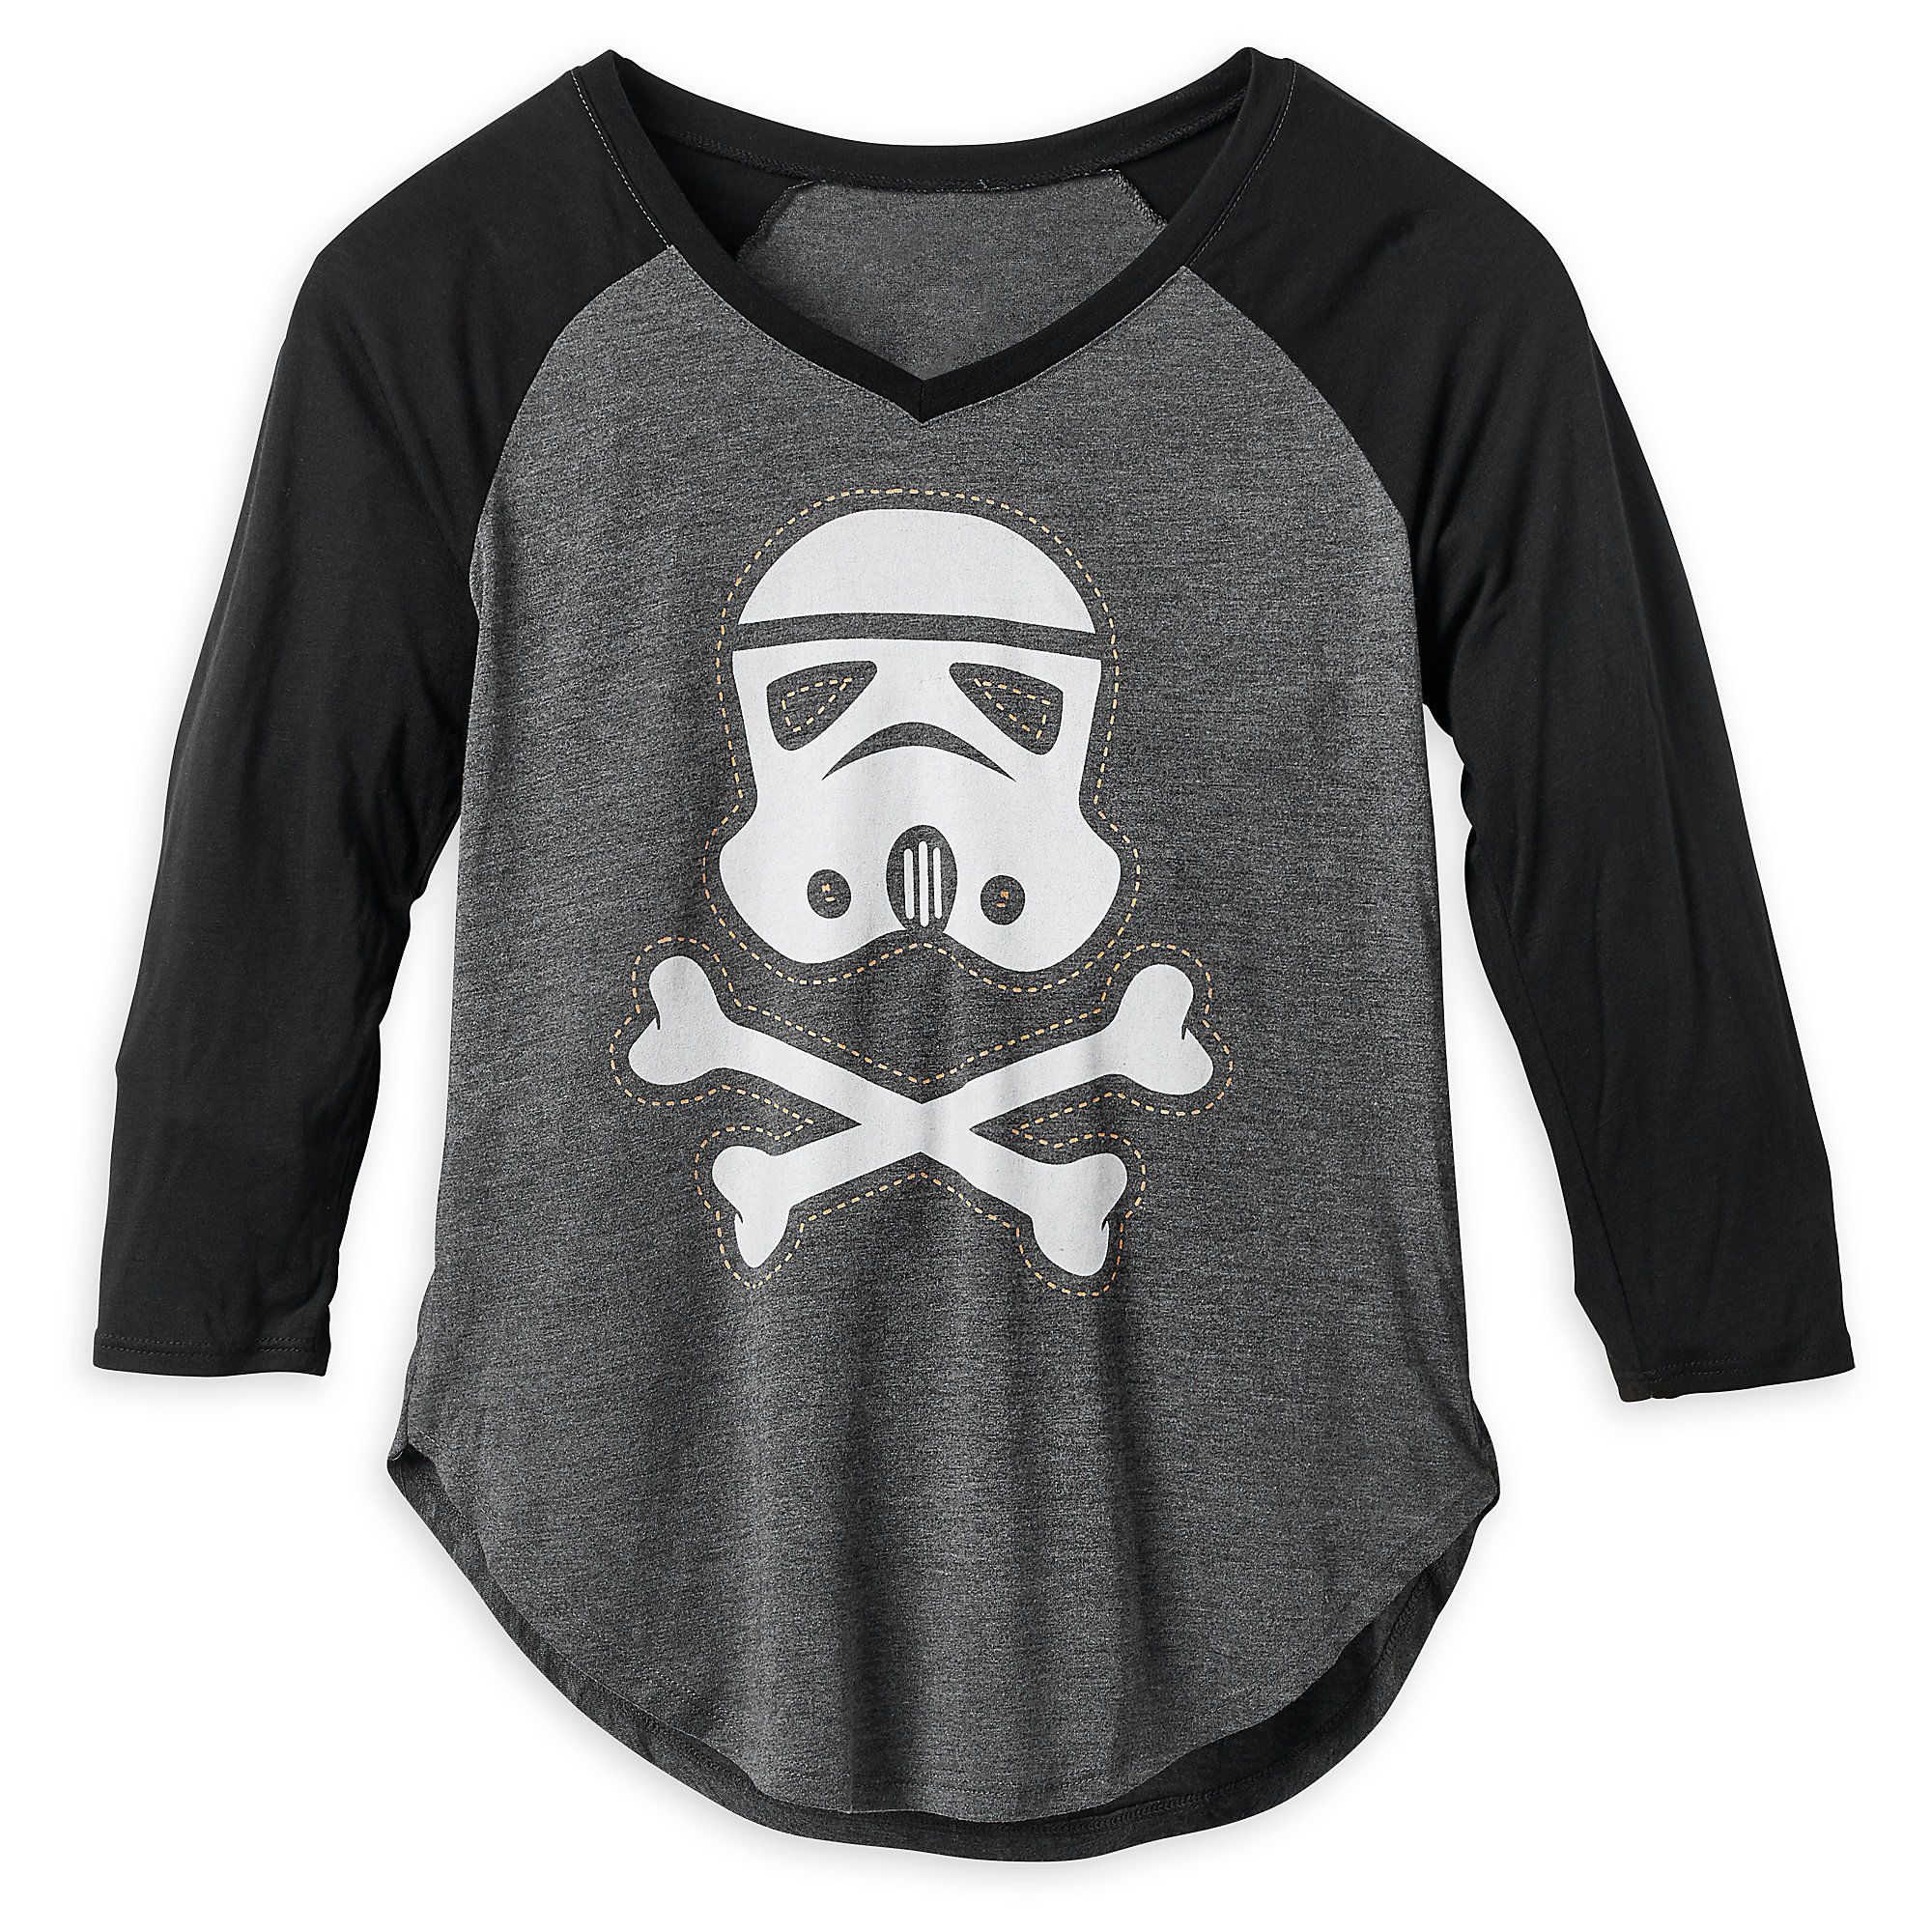 Women's Star Wars Stormtrooper Halloween Raglan T-Shirt at Shop Disney